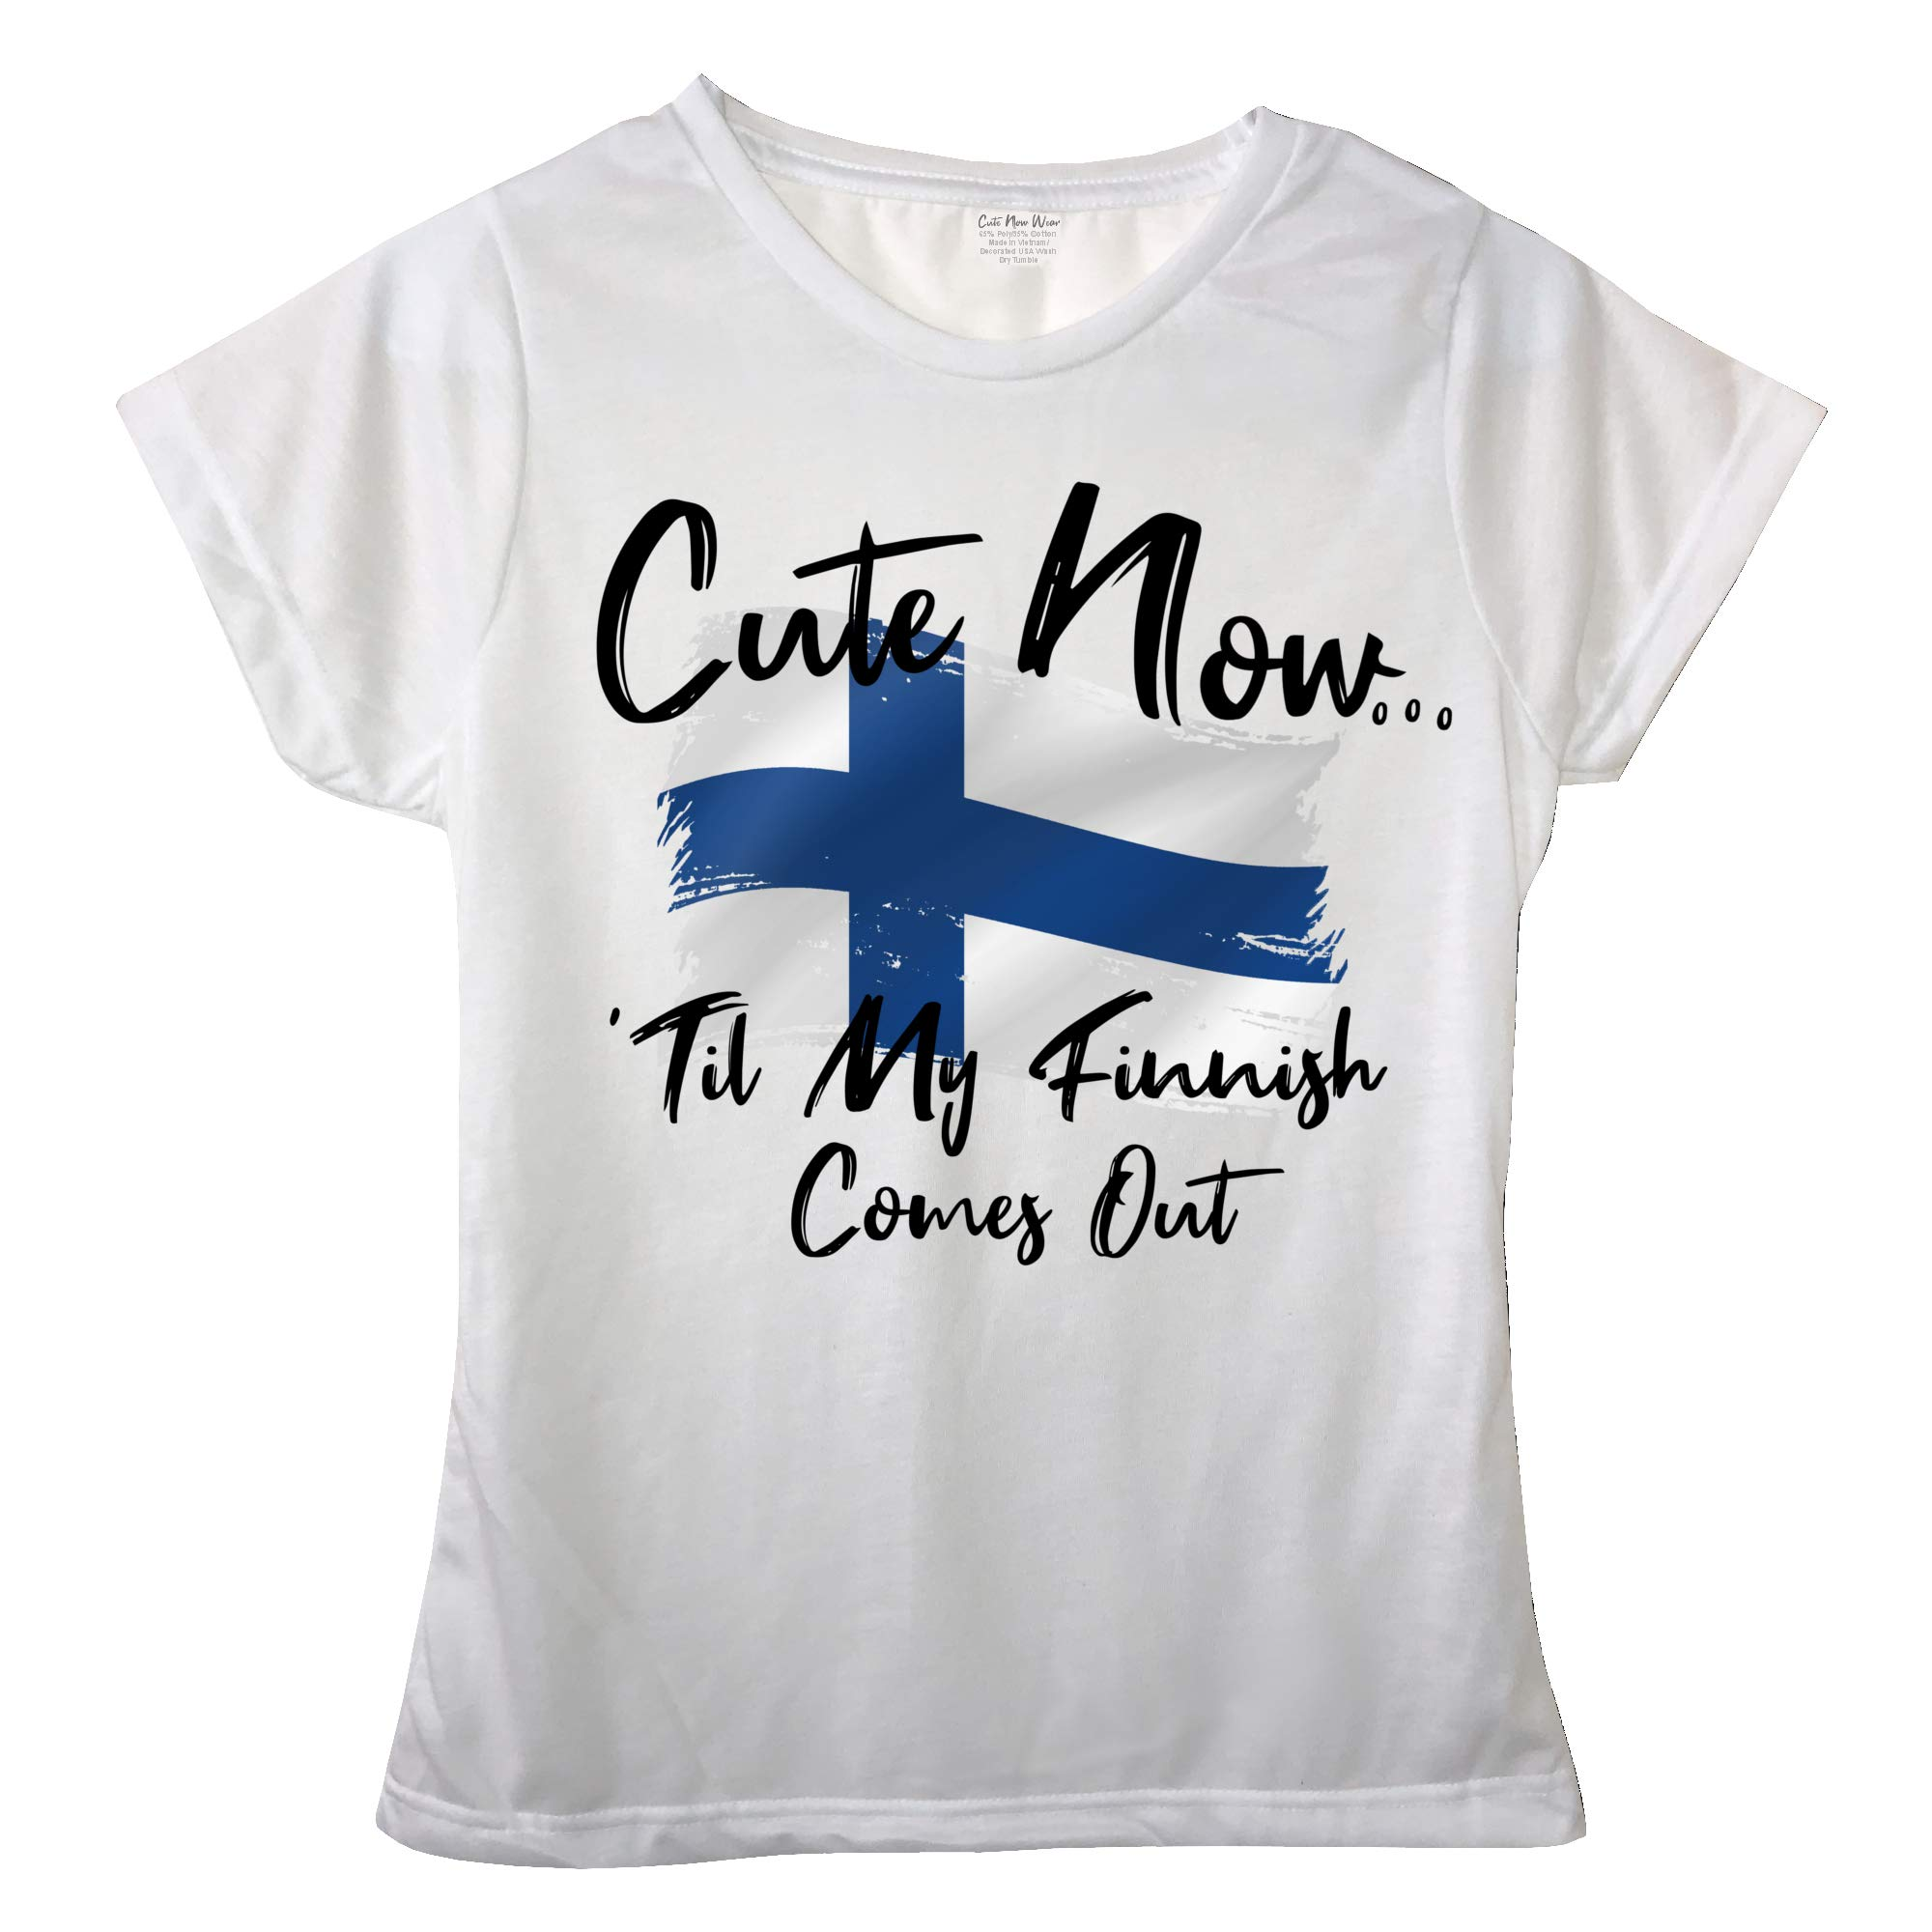 Cute Now Ladies Finland T-Shirt Til My Finnish Comes Out Womens White Short Sleeve Shirt Flag S-XXL